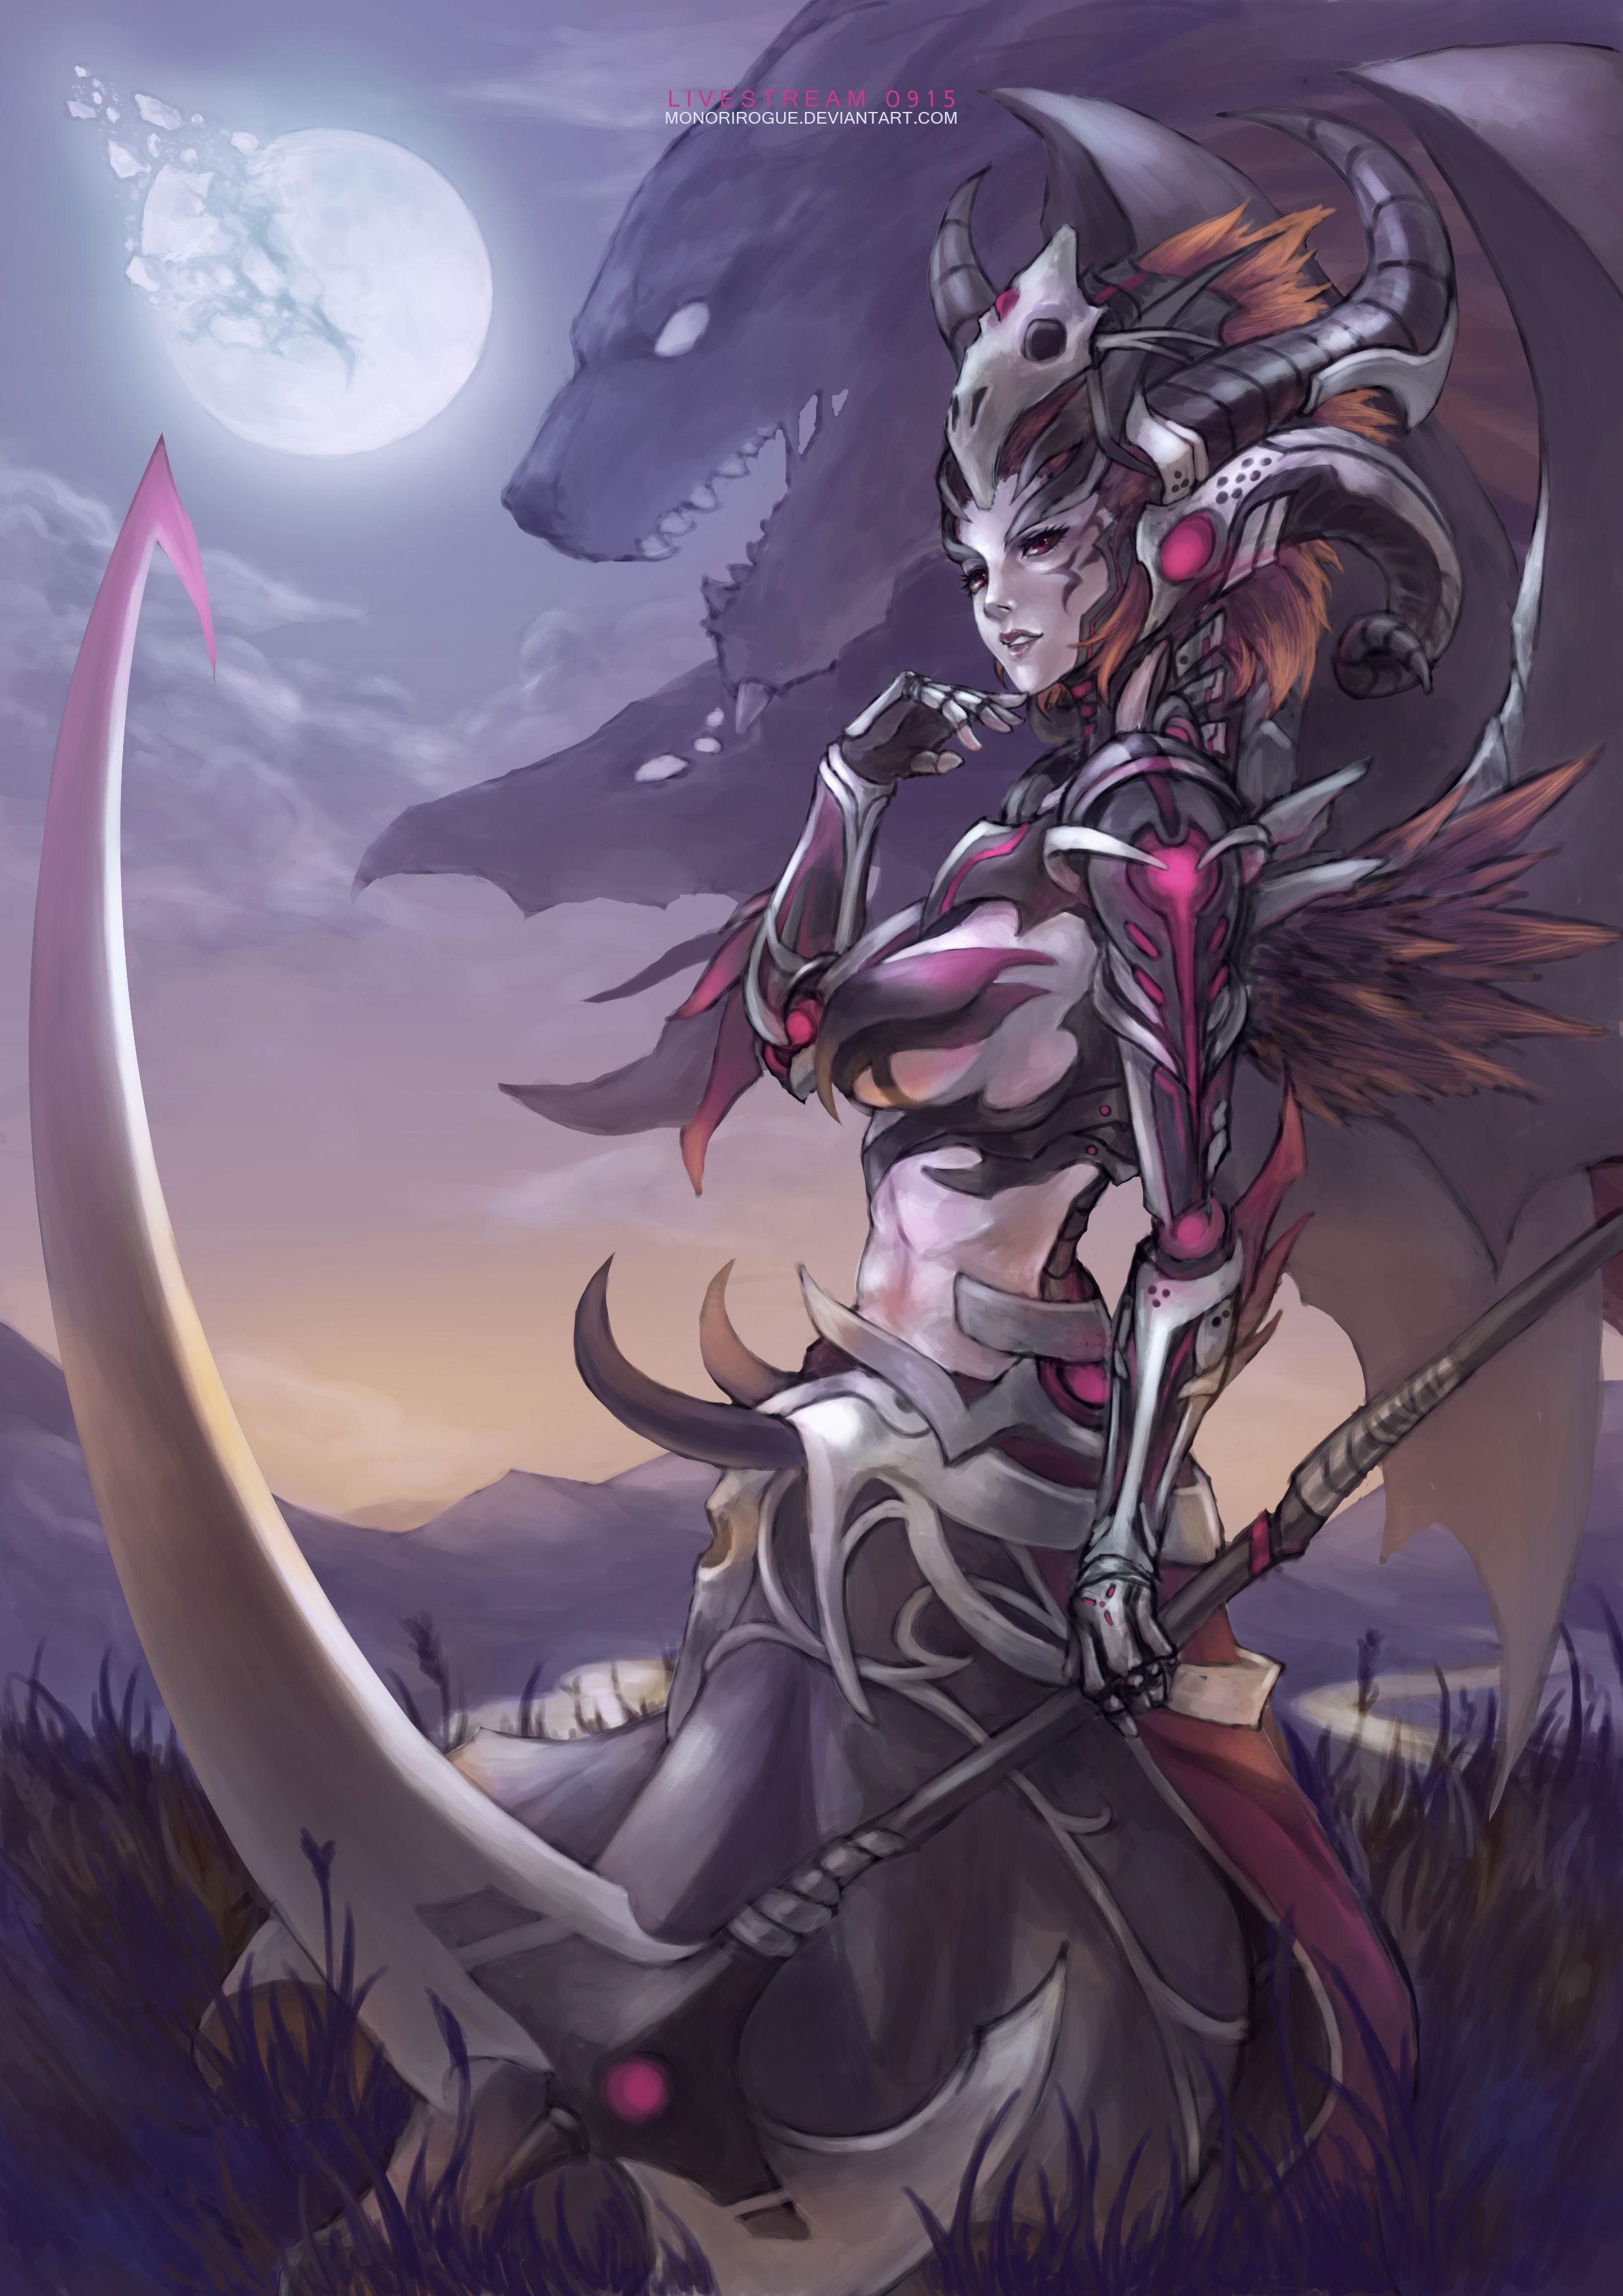 Anime picture 2480x3508 with  monori rogue single short hair tall image highres brown hair pink eyes profile braid (braids) horn (horns) lips full moon facial mark girl gloves moon helmet monster